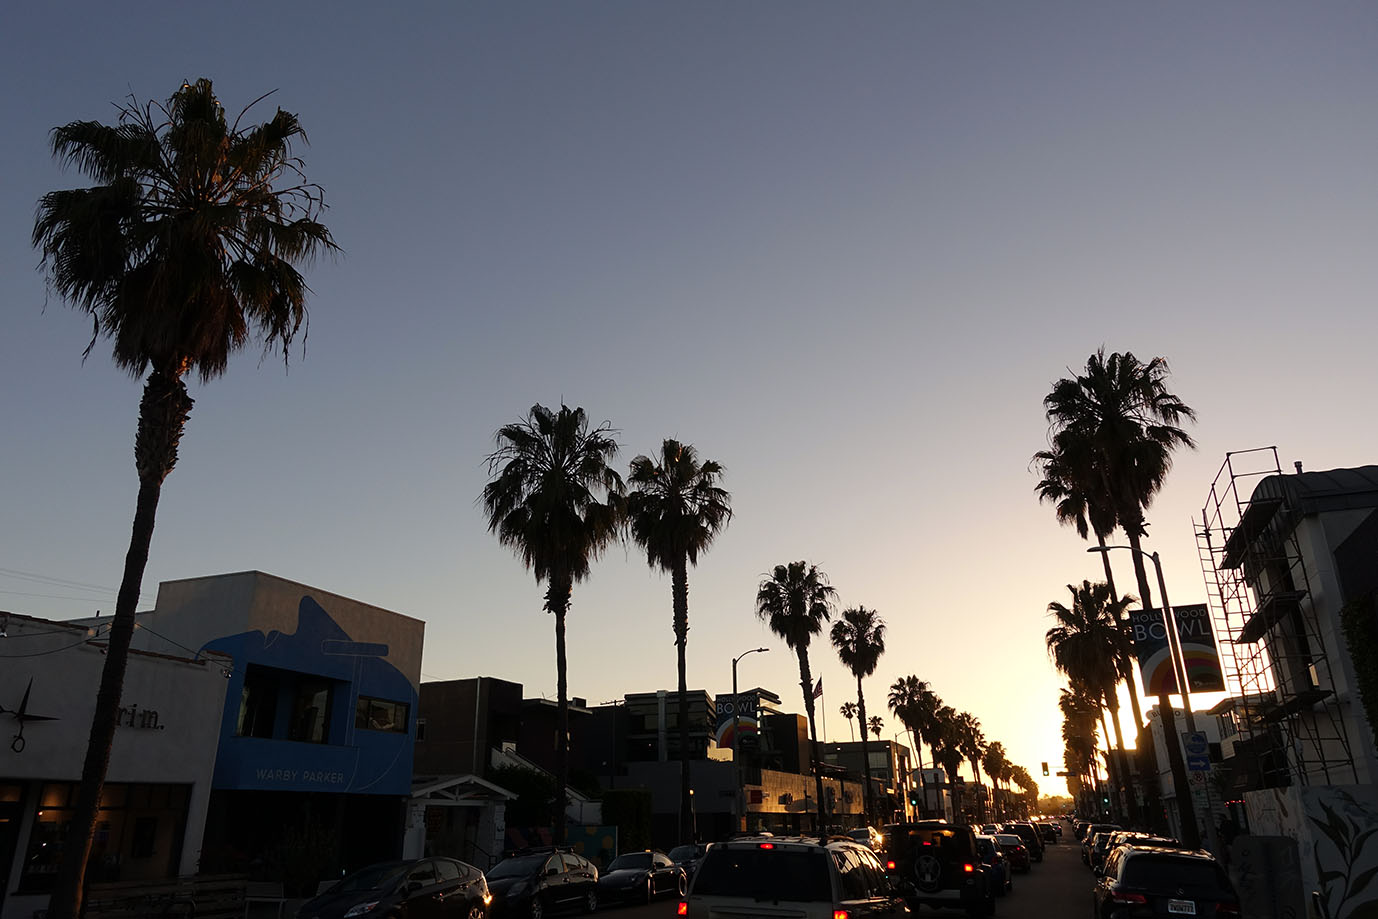 my Highlights and travels tips of los angeles